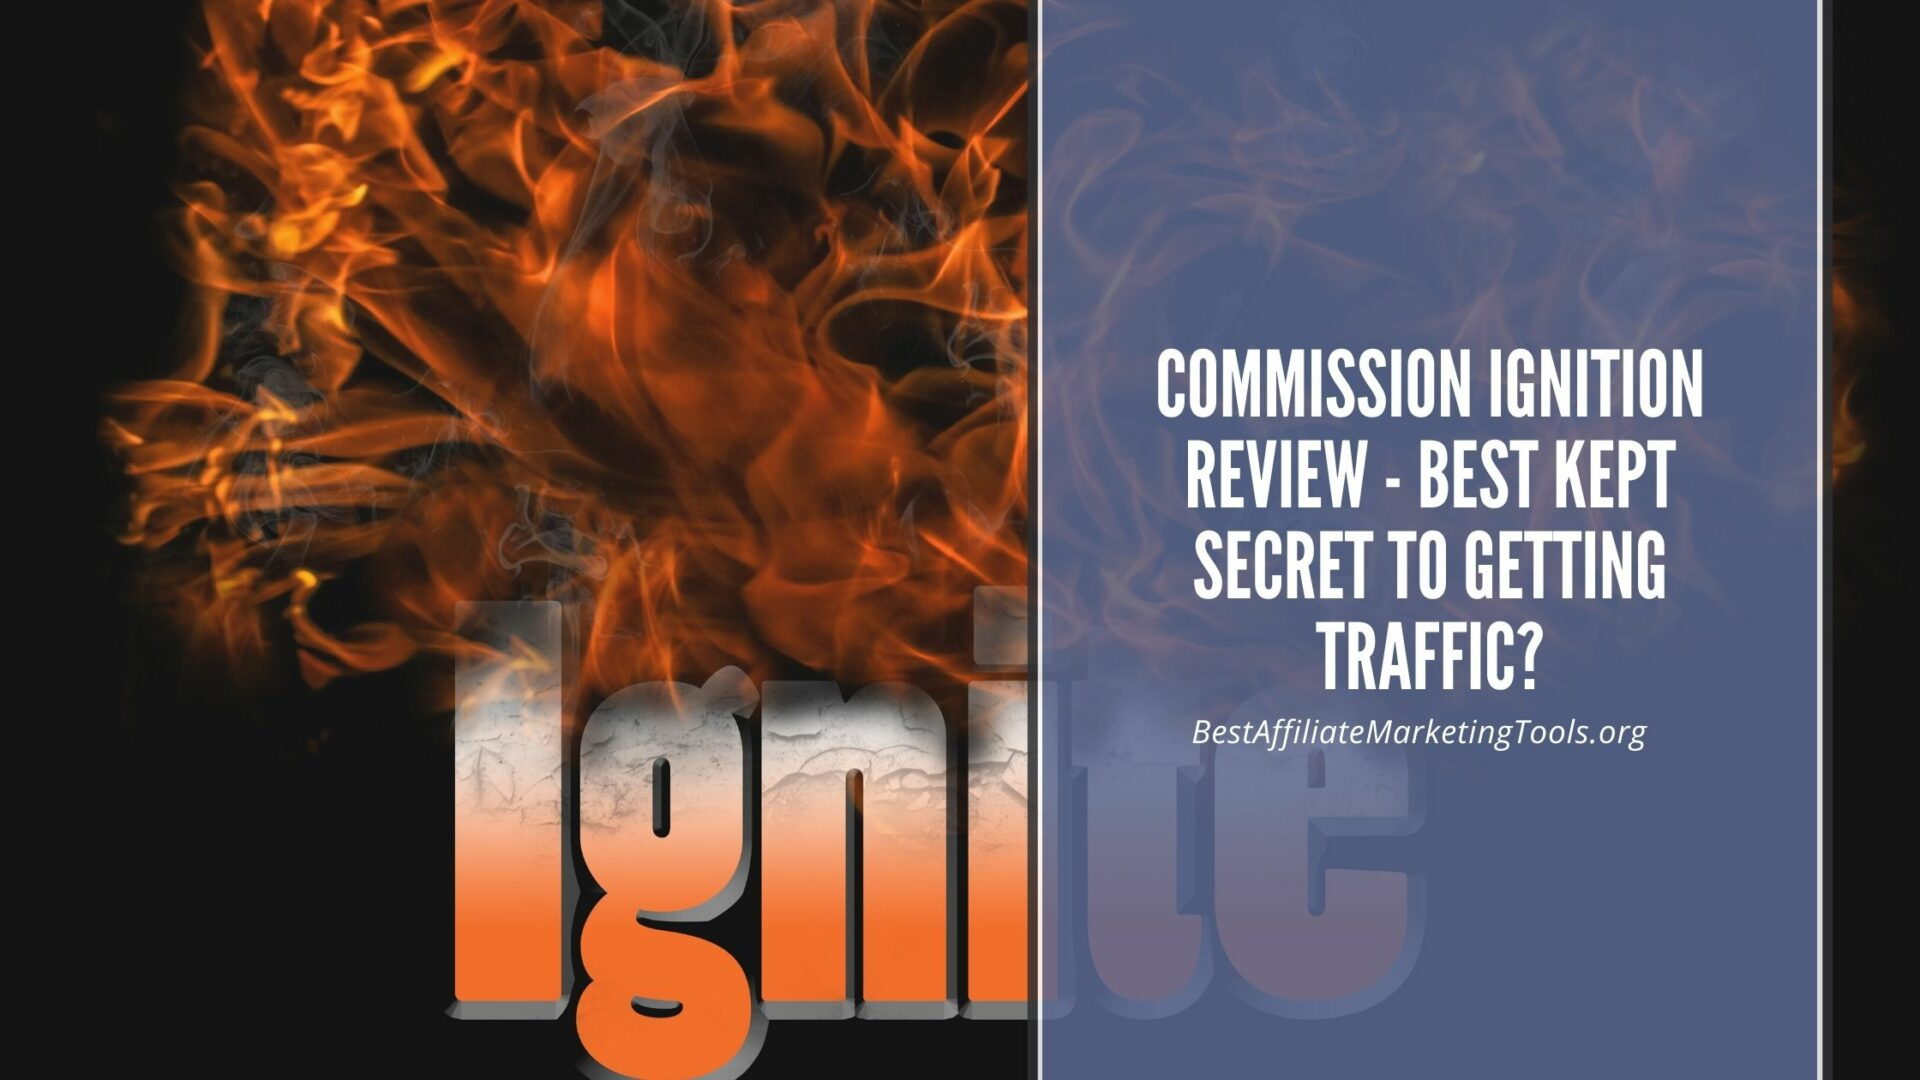 Commission Ignition Review